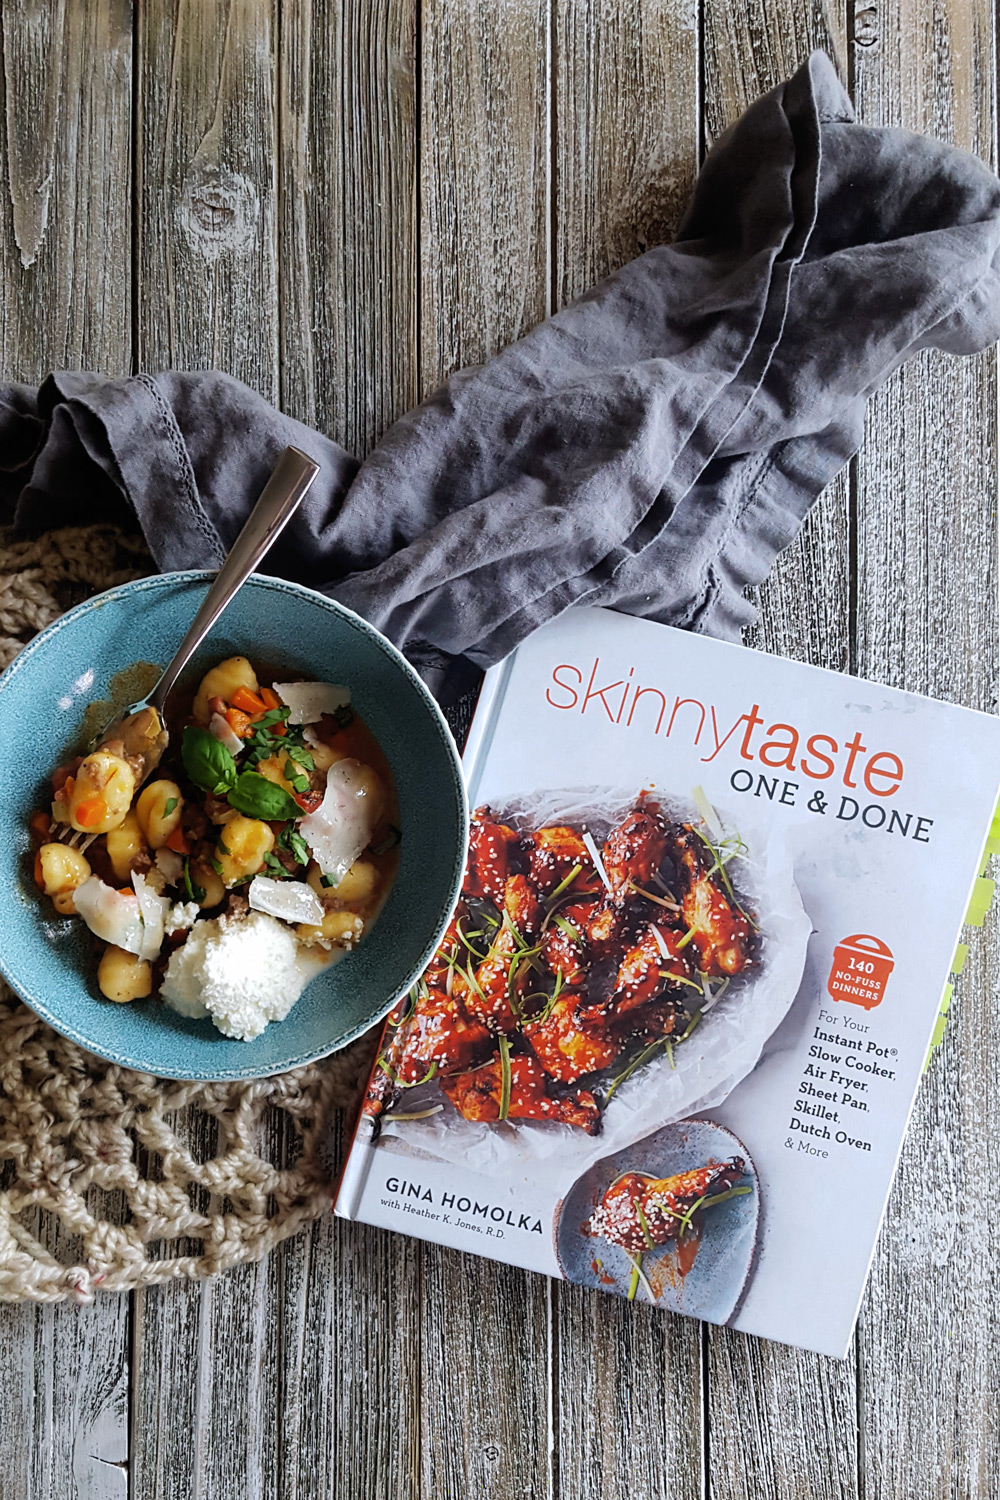 Gina Homolka's Skinnytaste One & Done will help you get a simple & tasty no-fuss dinner on the table any night of the week. #cookbookreview #skinnytaste #healthyrecipe #review | FeastInThyme.com